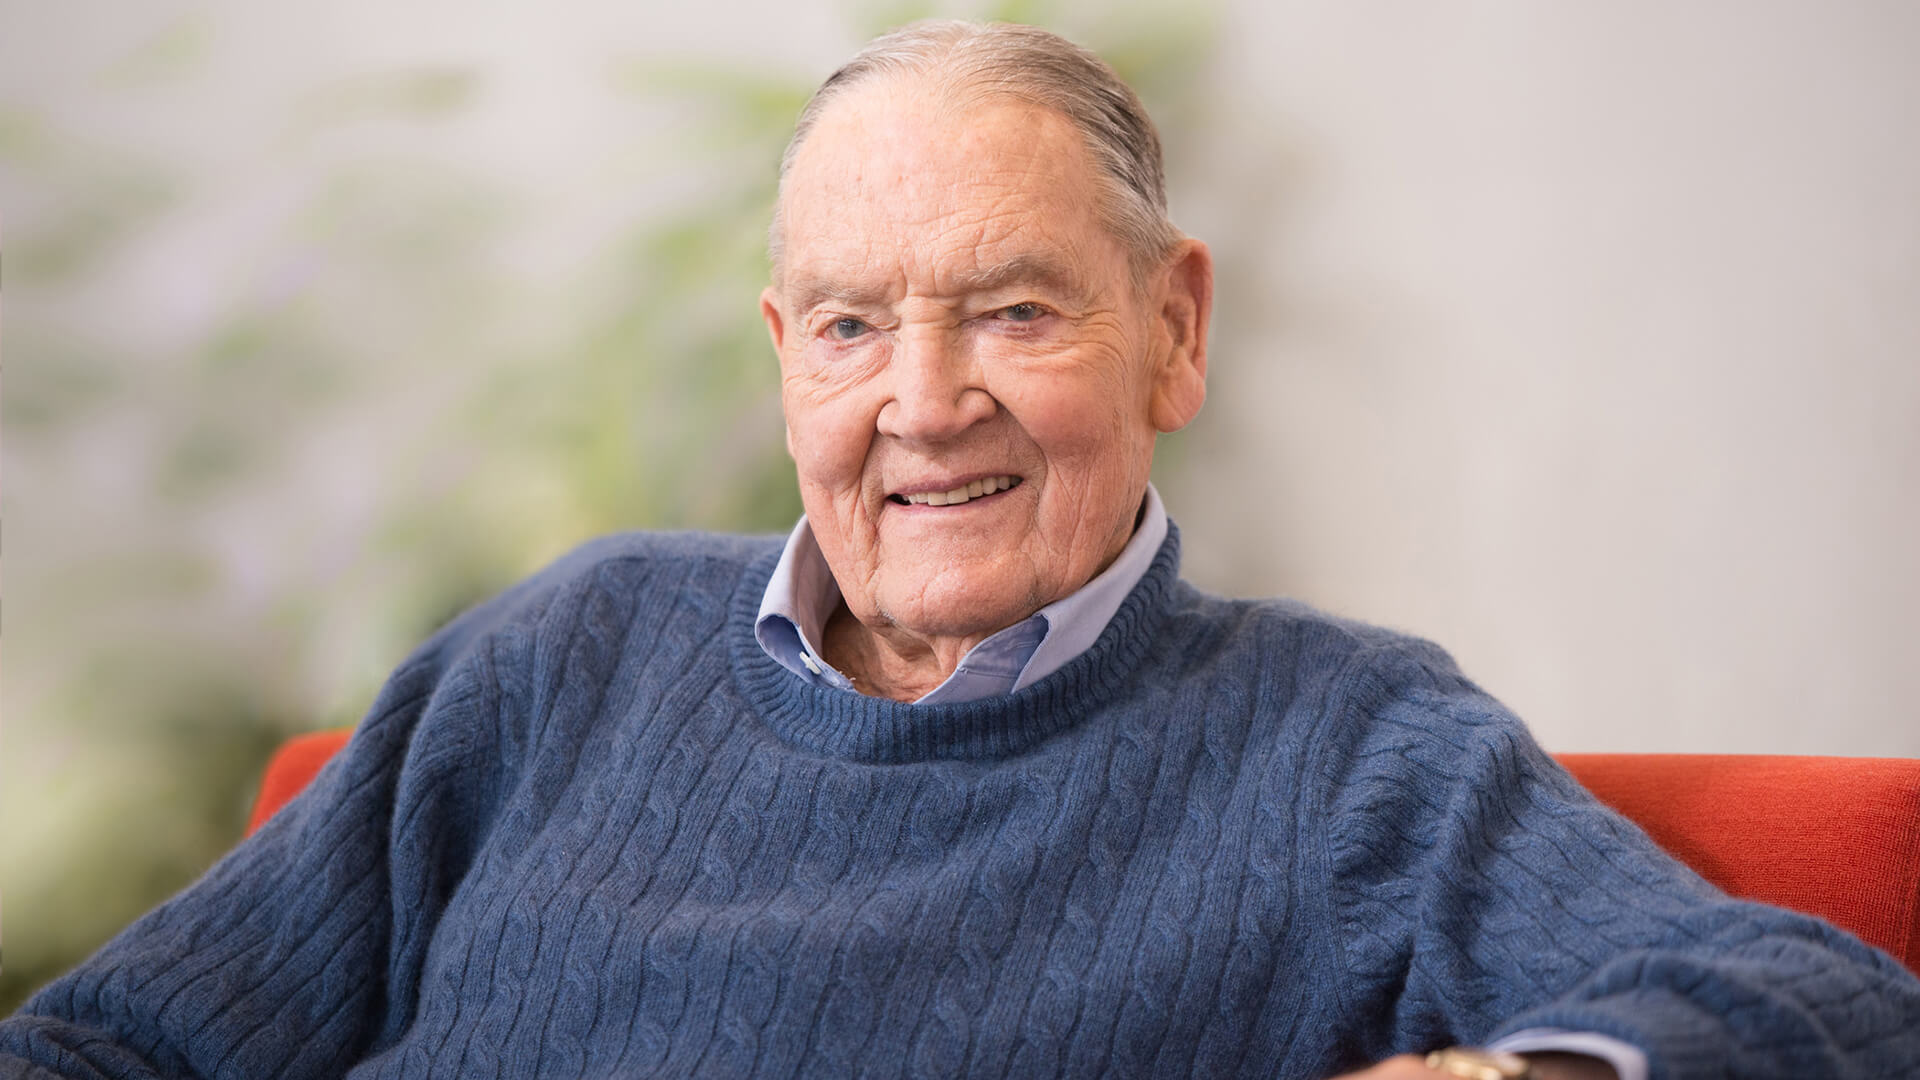 Jack Bogle's Impact on Your Money Was Massive: Here's a Look Back at the Investment Guru's Invention and More